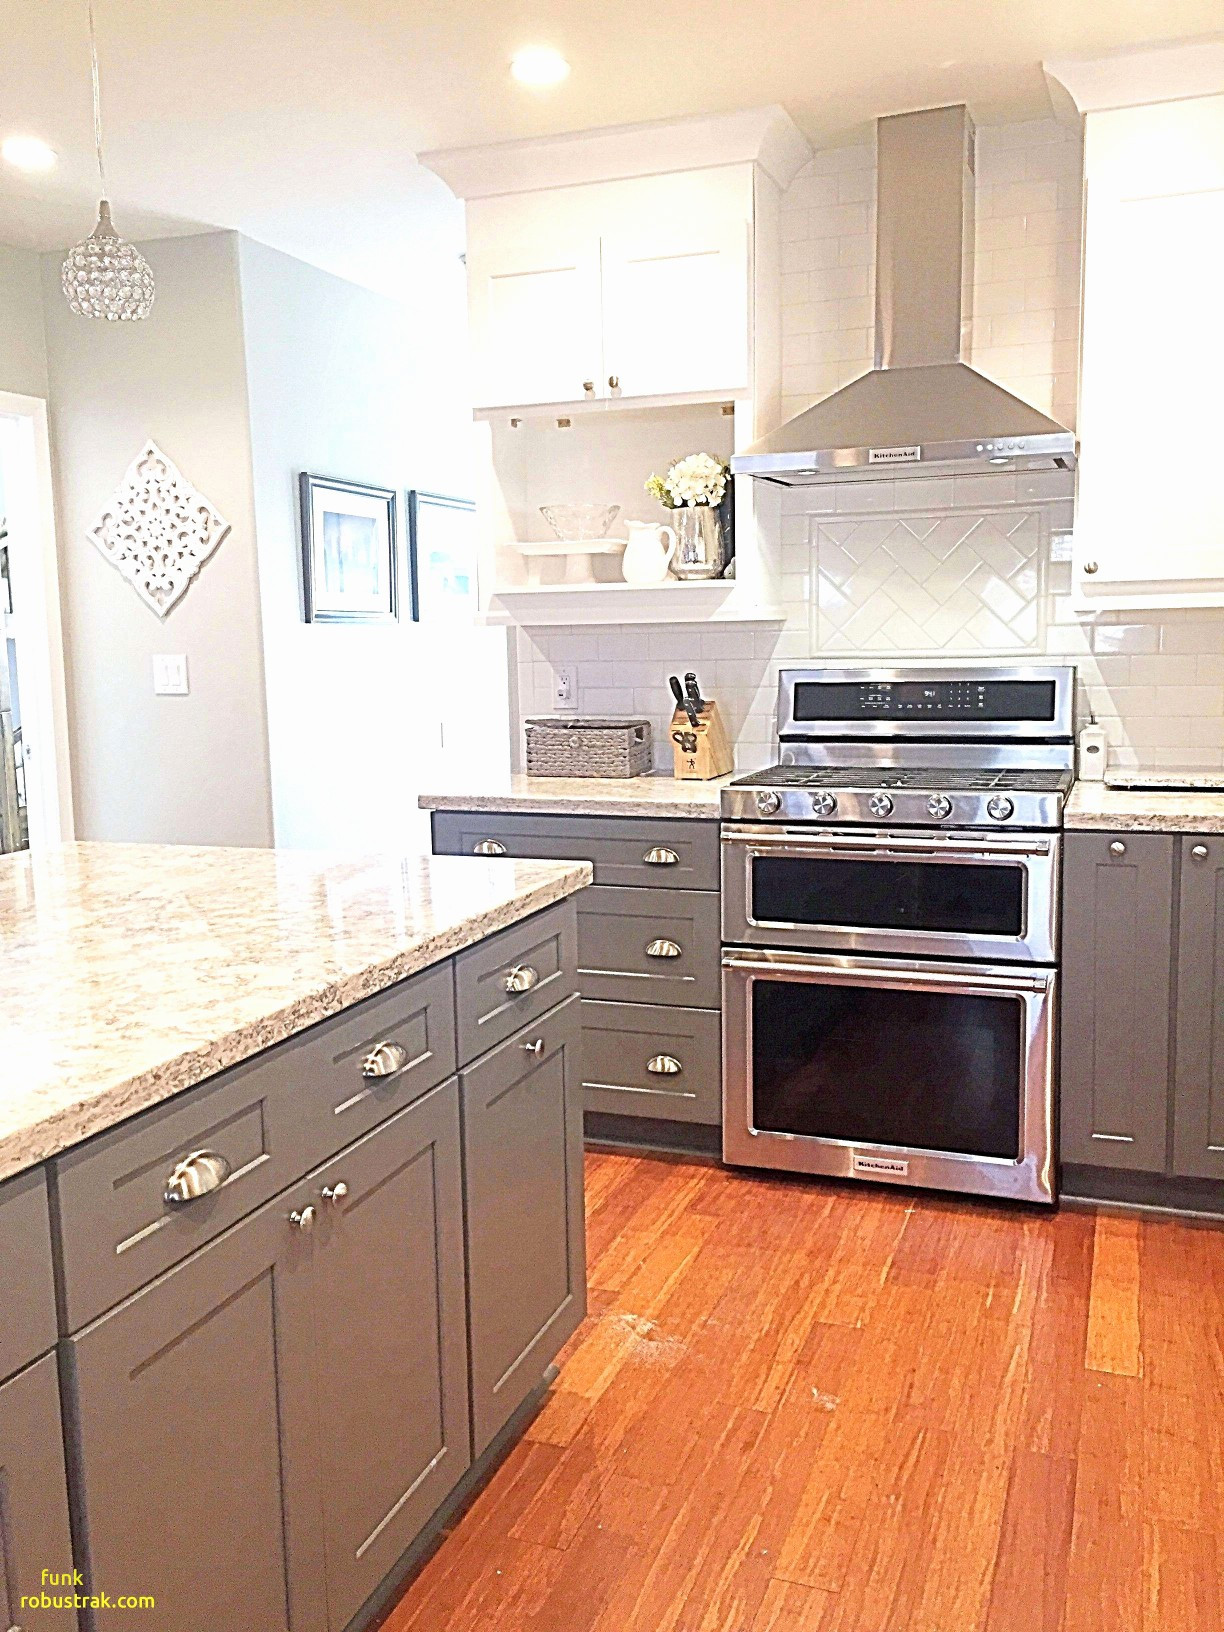 22 Fashionable Can You Put Hardwood Floors Over Tile 2021 free download can you put hardwood floors over tile of 27 finest how to install kitchen tile ideas throughout kitchen colors with dark cabinets best colored kitchen cabinets lovely kitchen cabinet 0d inte